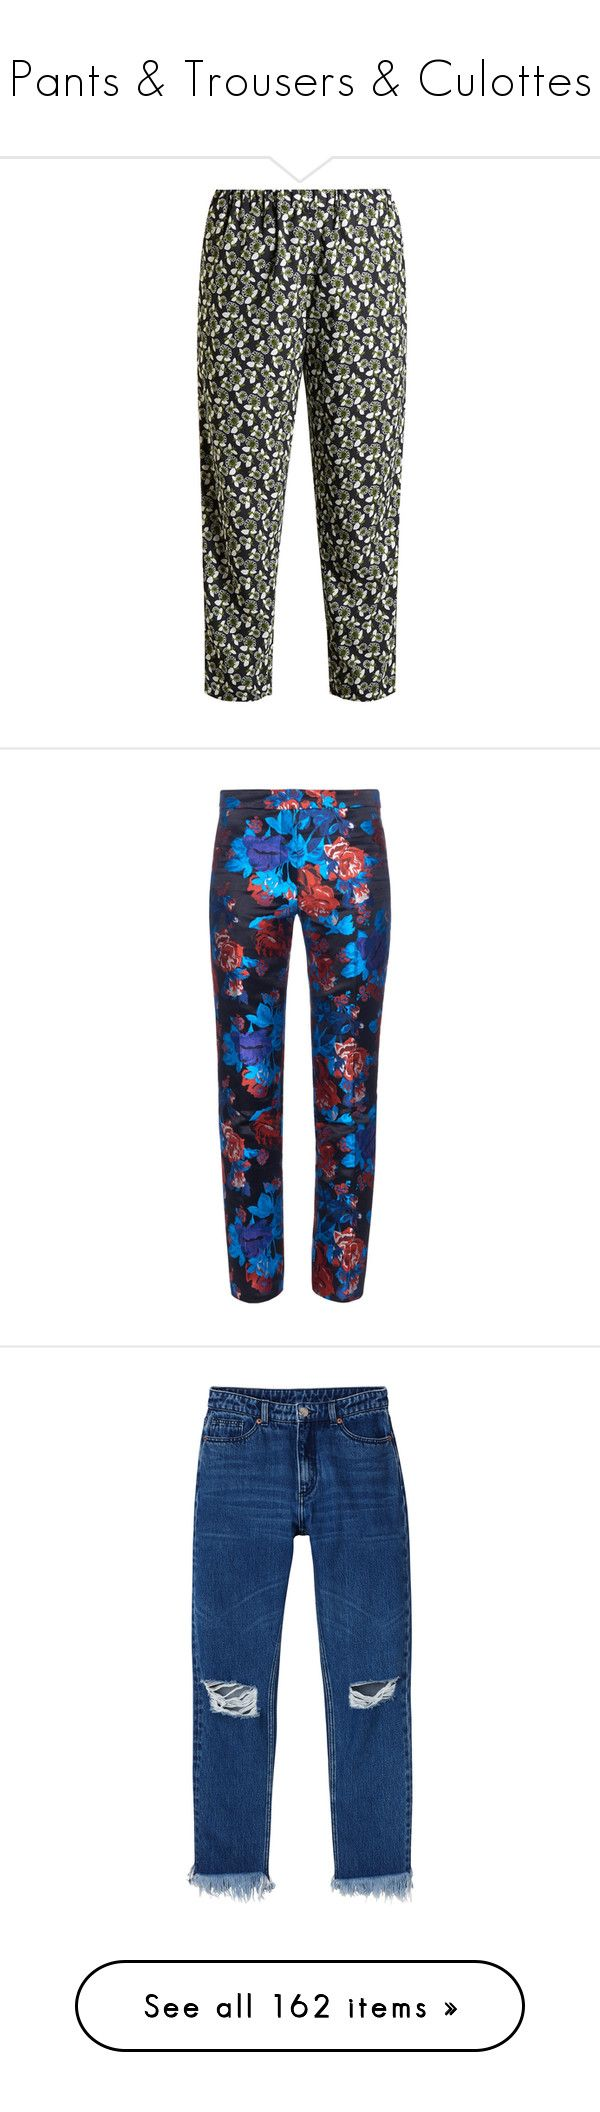 """""""Pants & Trousers & Culottes"""" by taught-to-fly19 on Polyvore featuring pants, capris, green print, floral printed pants, print pants, loose fitting pants, elastic waistband pants, floral-print pants, bottoms e trousers"""